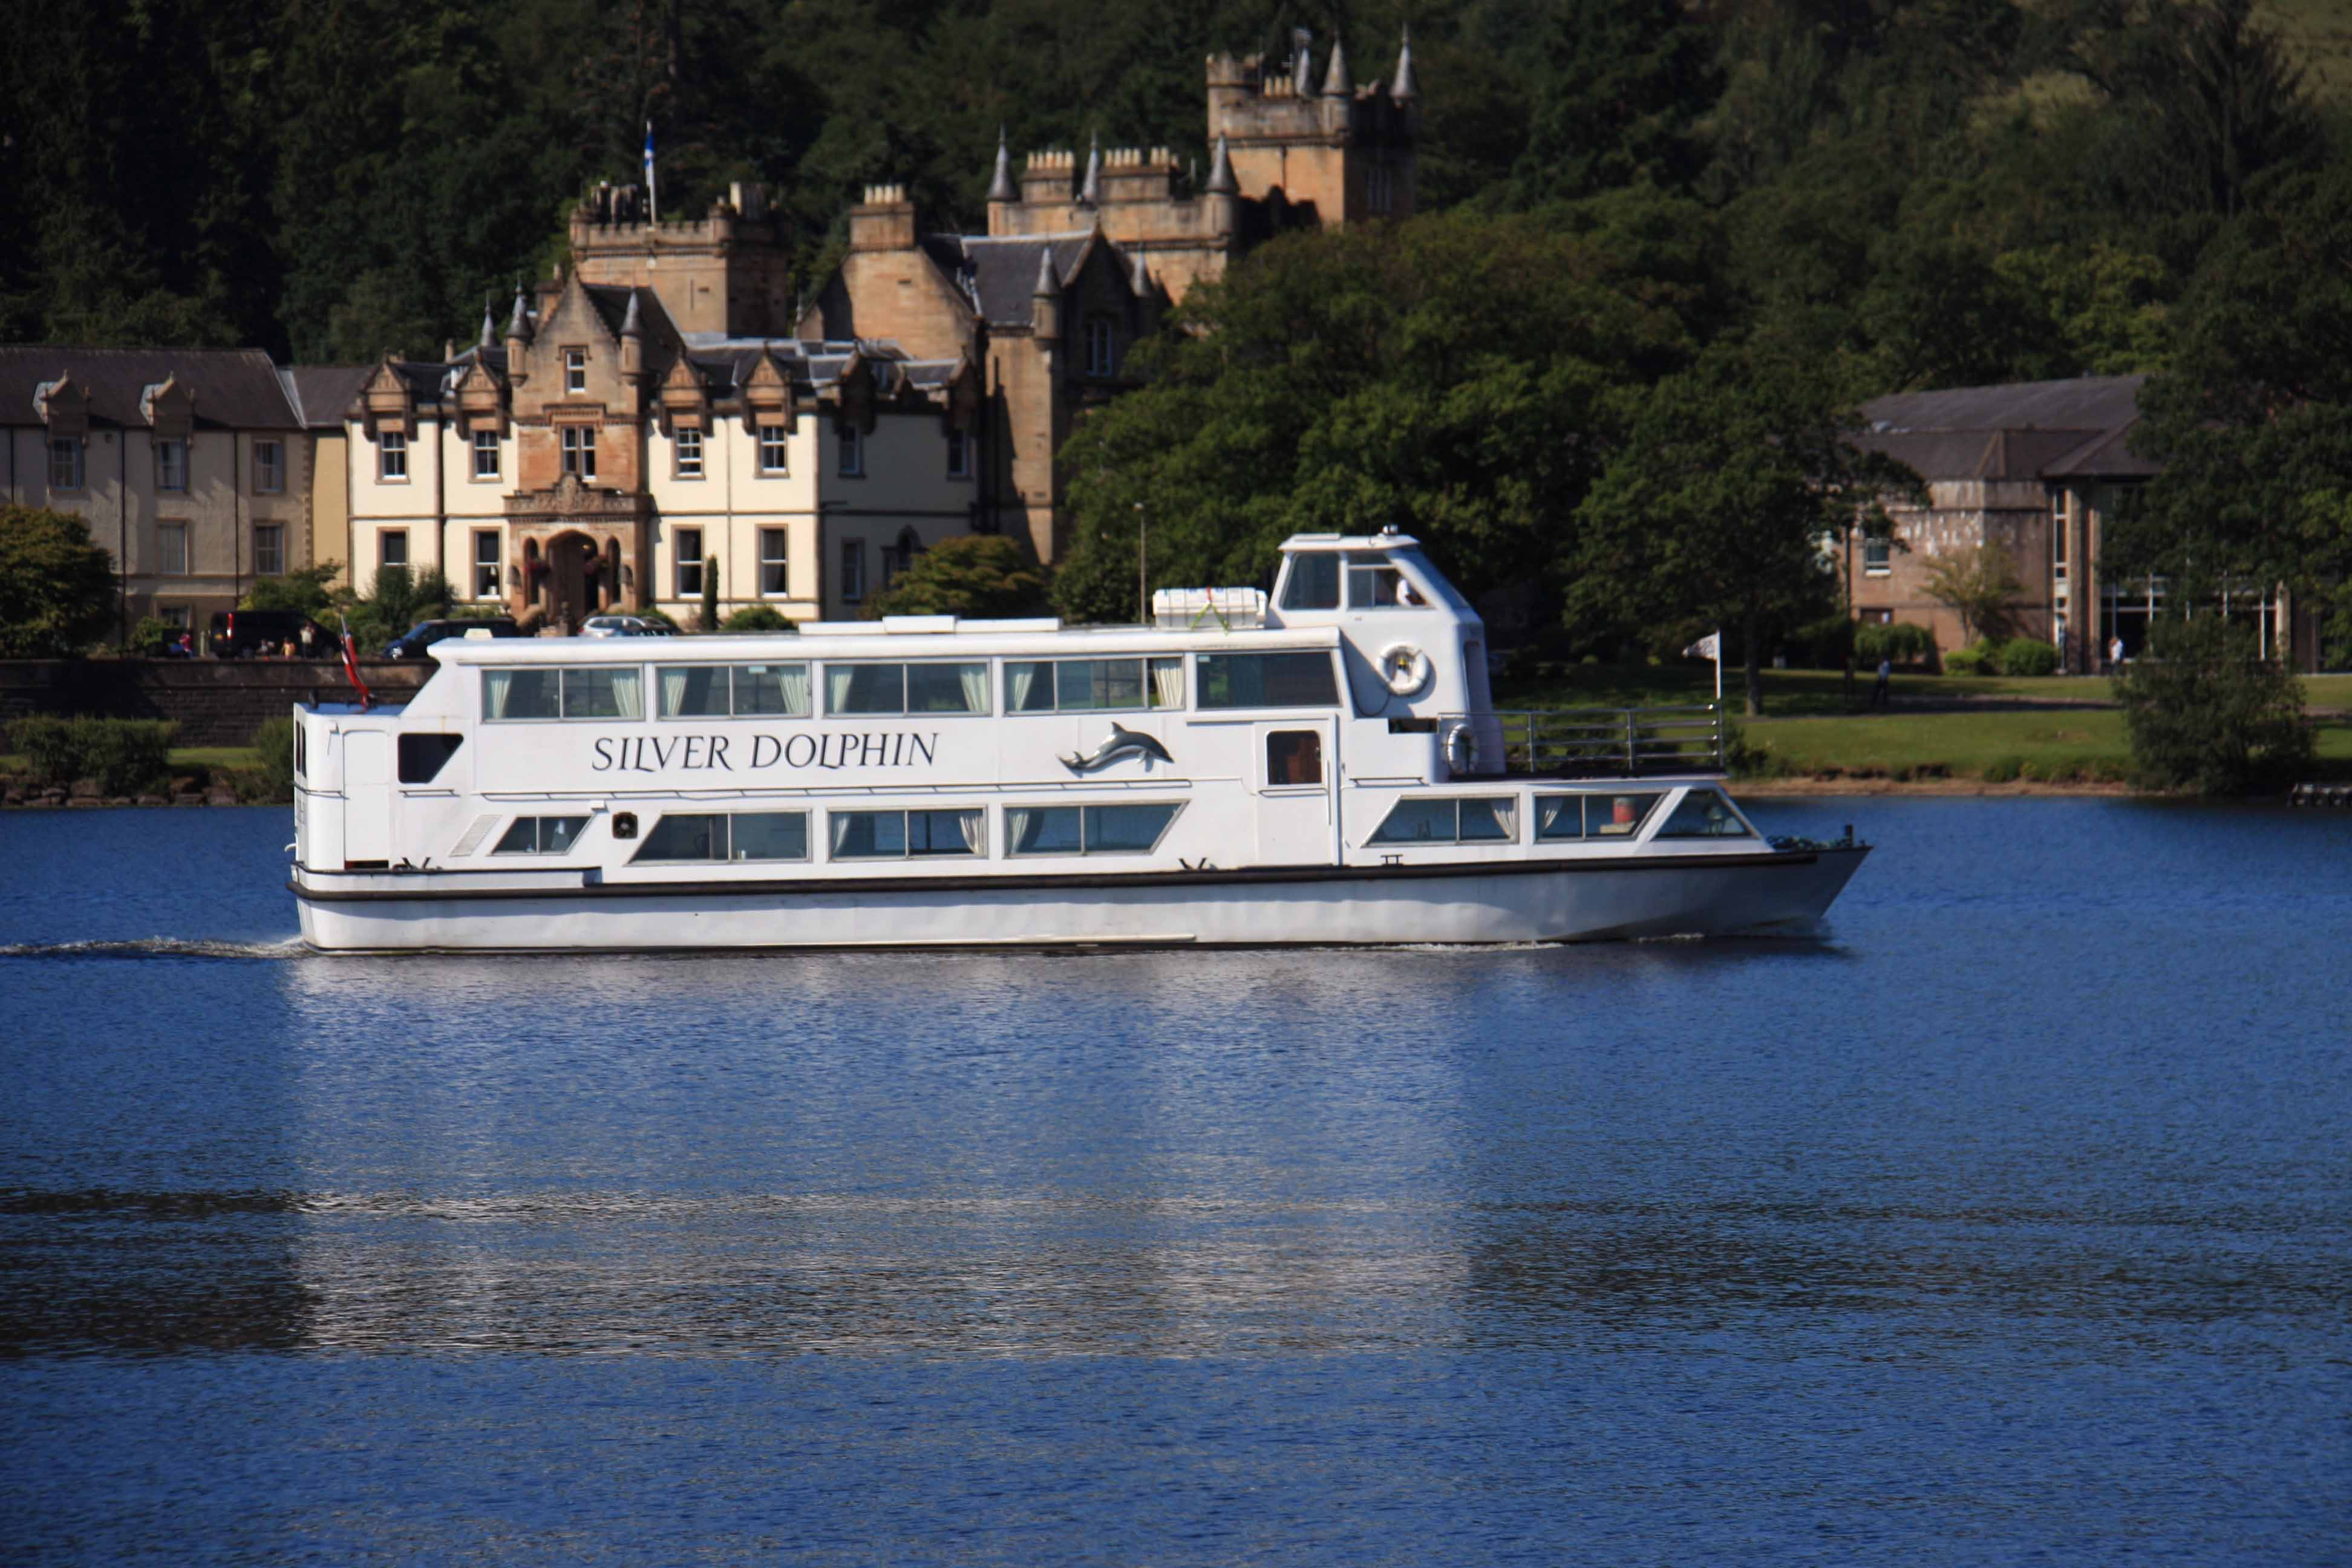 Sweeney's Cruises - Sliver Dolphin cruiser sailing past Cameron House